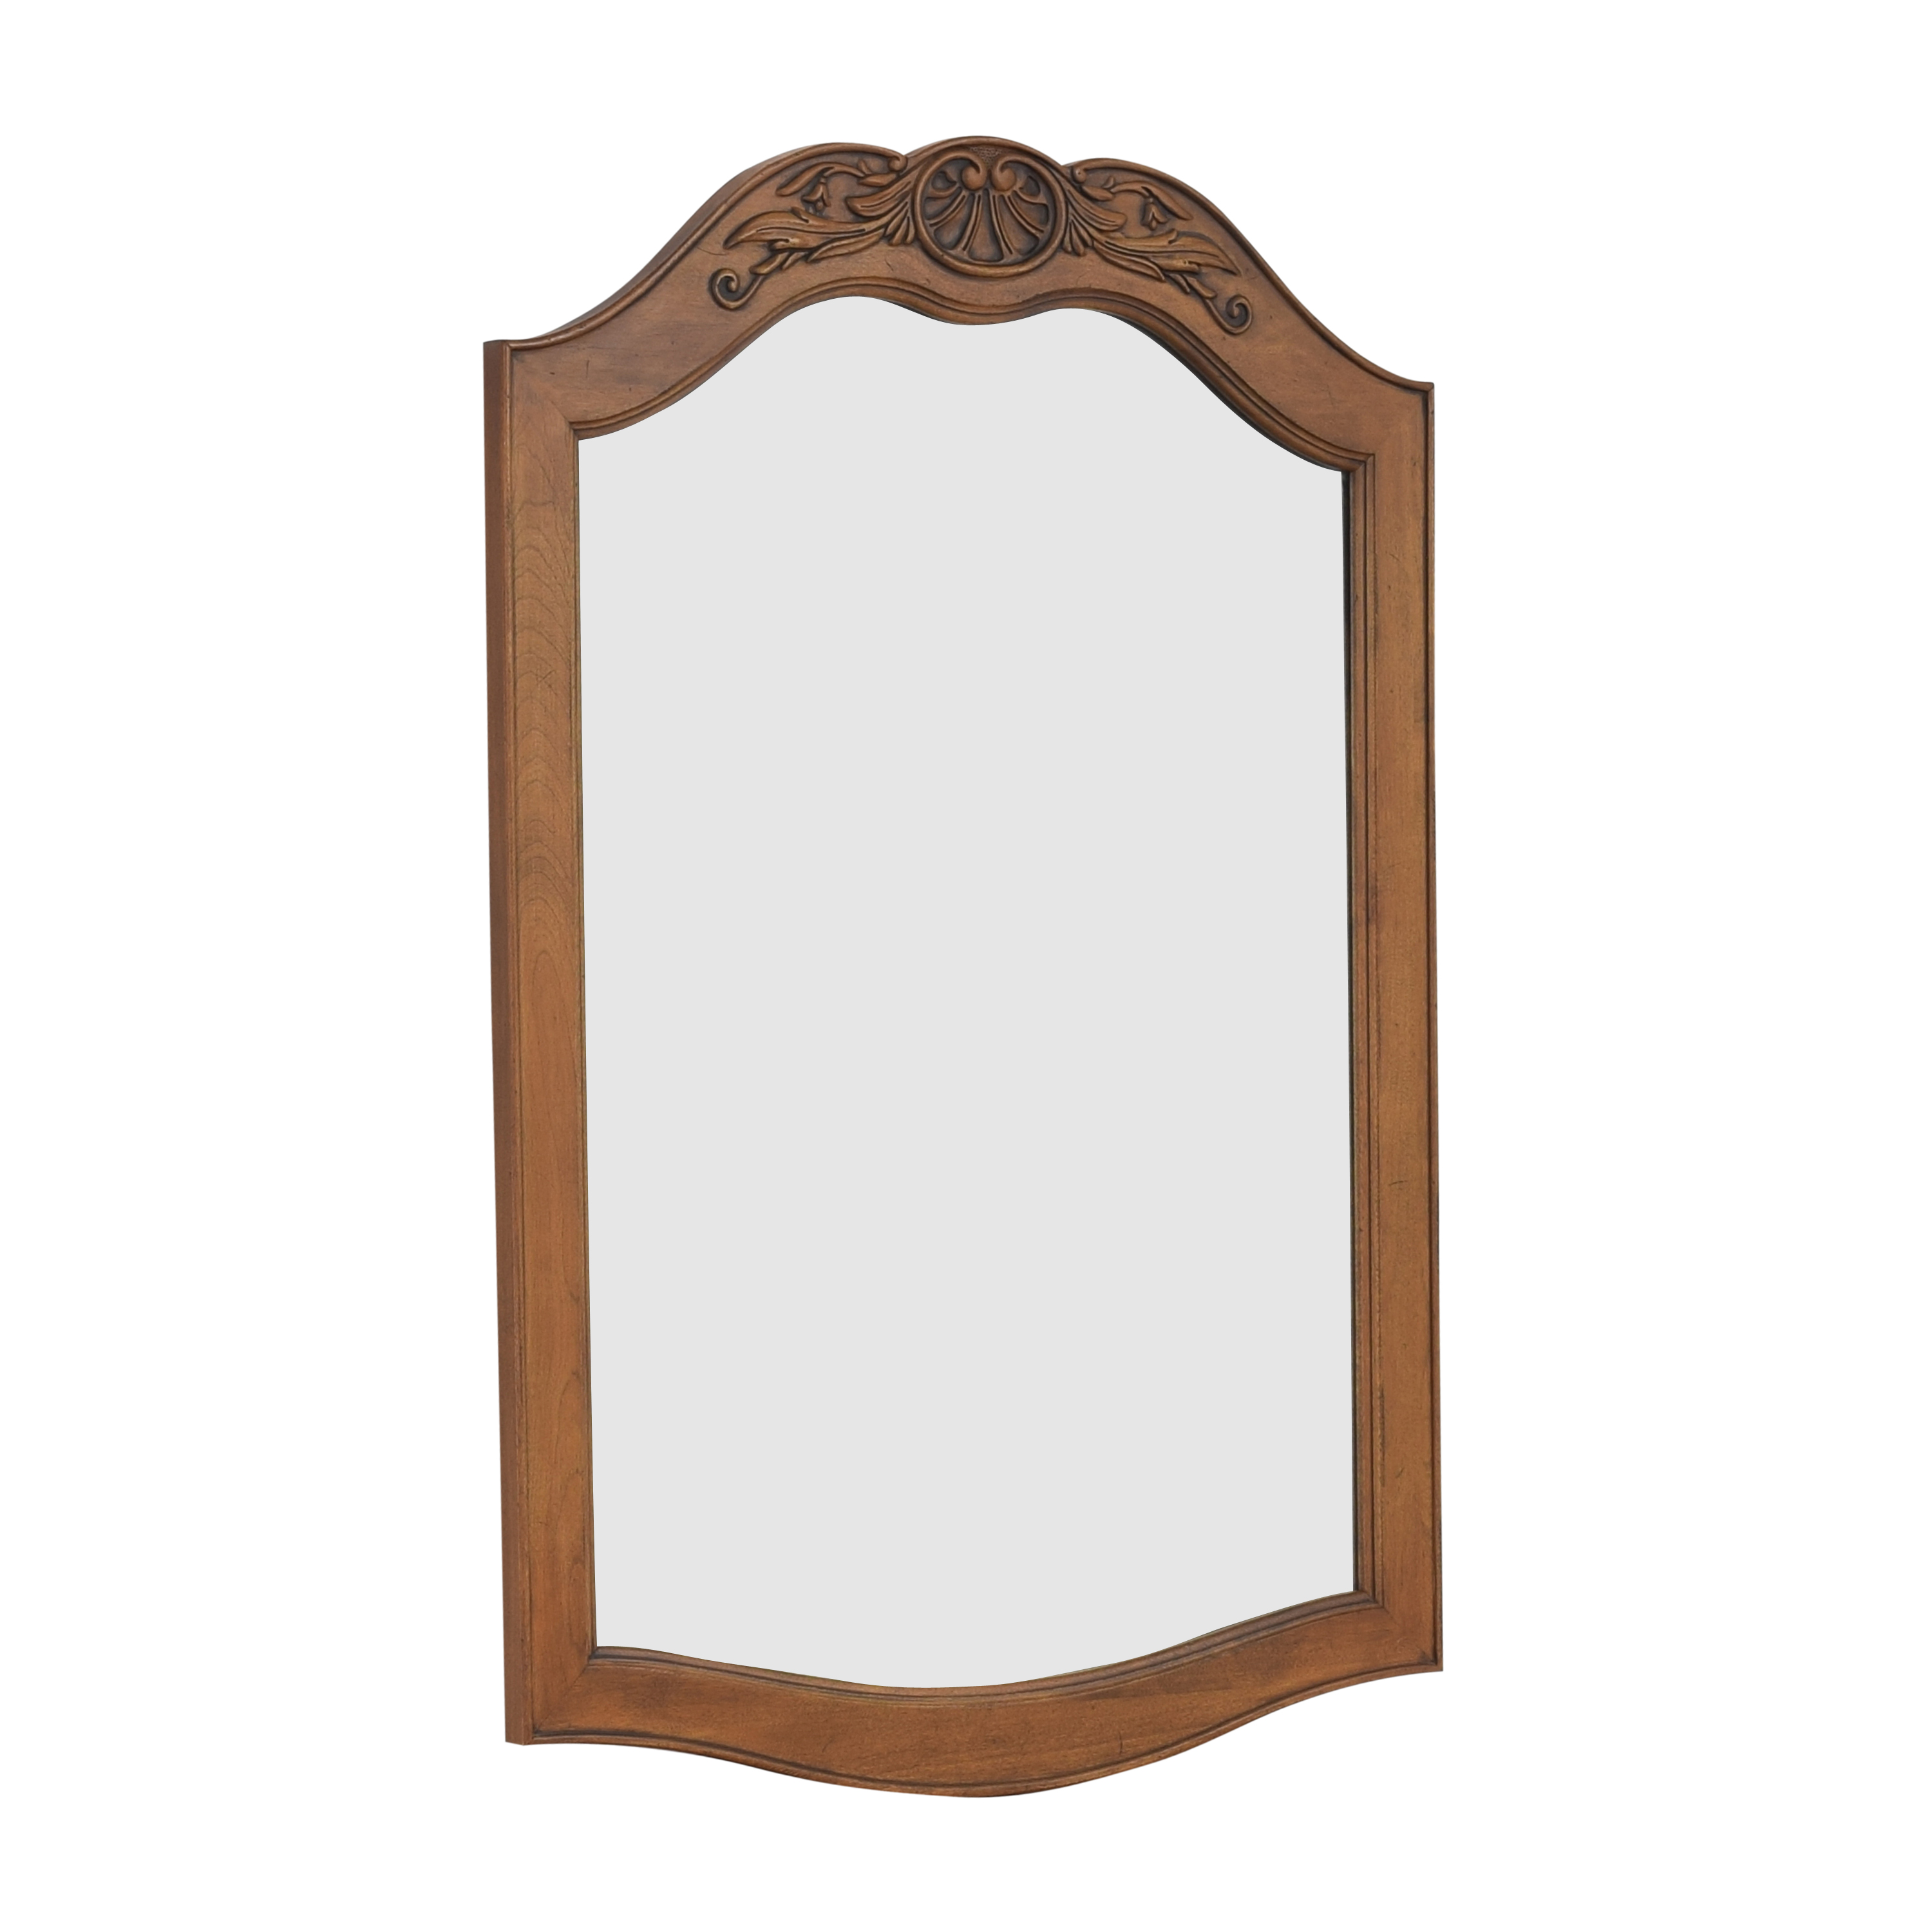 Ethan Allen Ethan Allen Country French Framed Mirror for sale